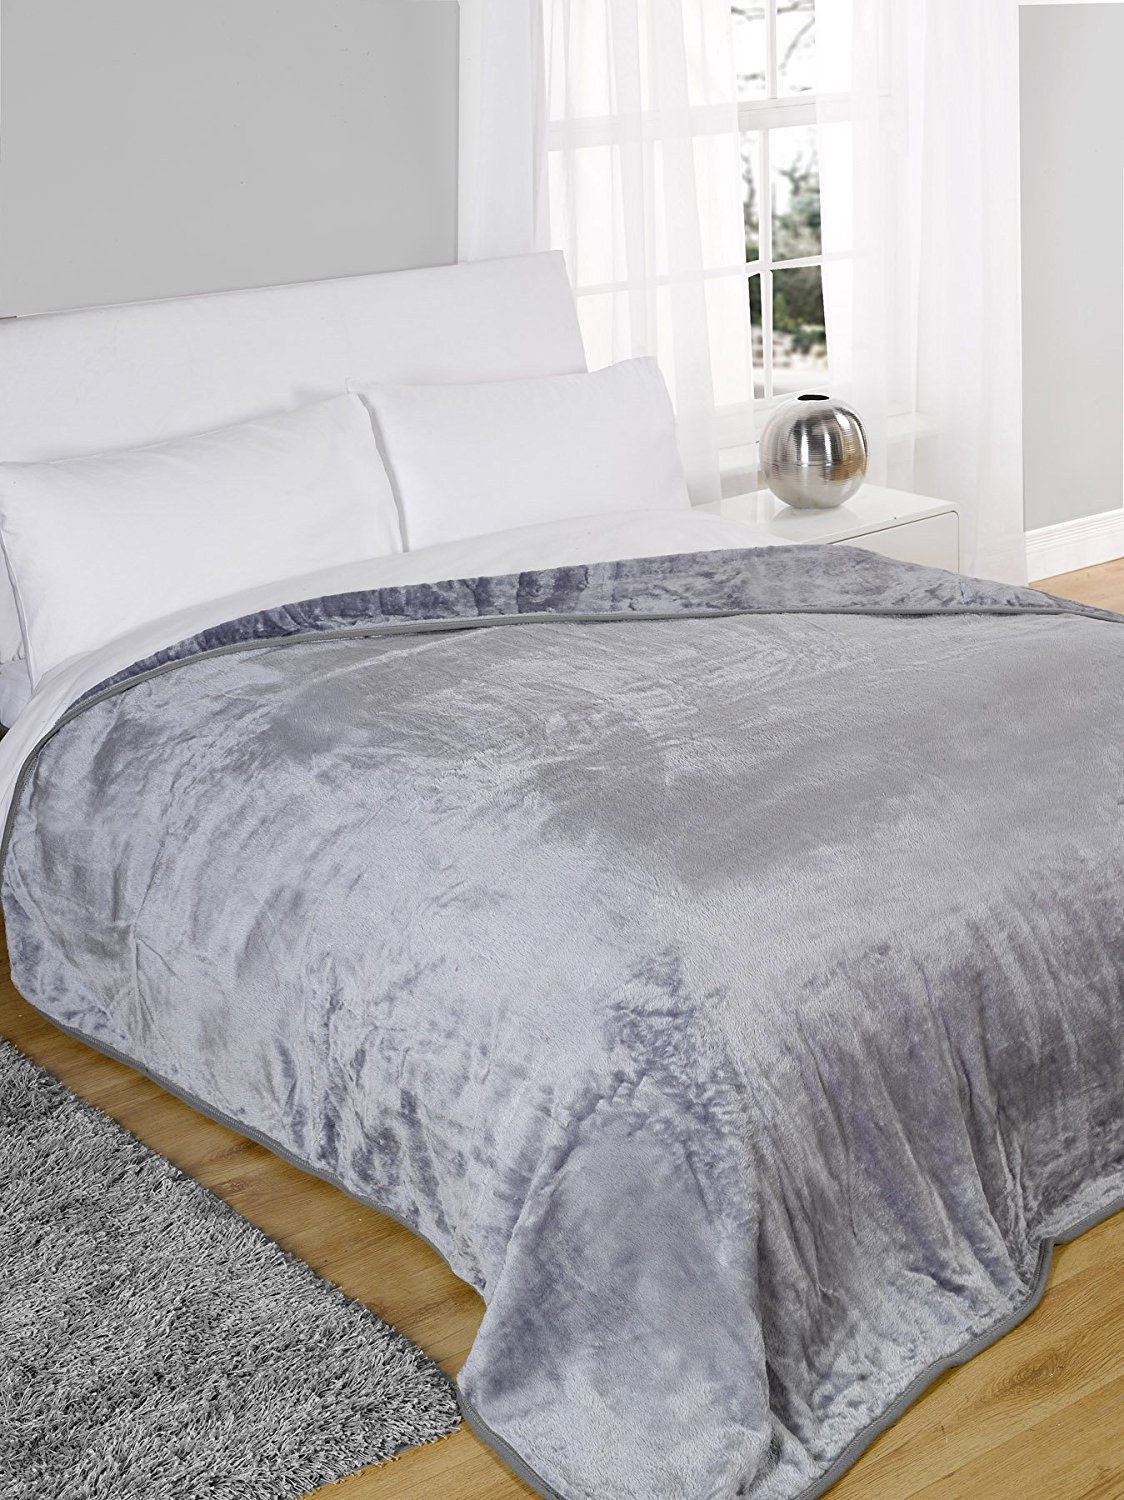 Dreamscene Bed Fleece Throw Blanket Super Soft Warm